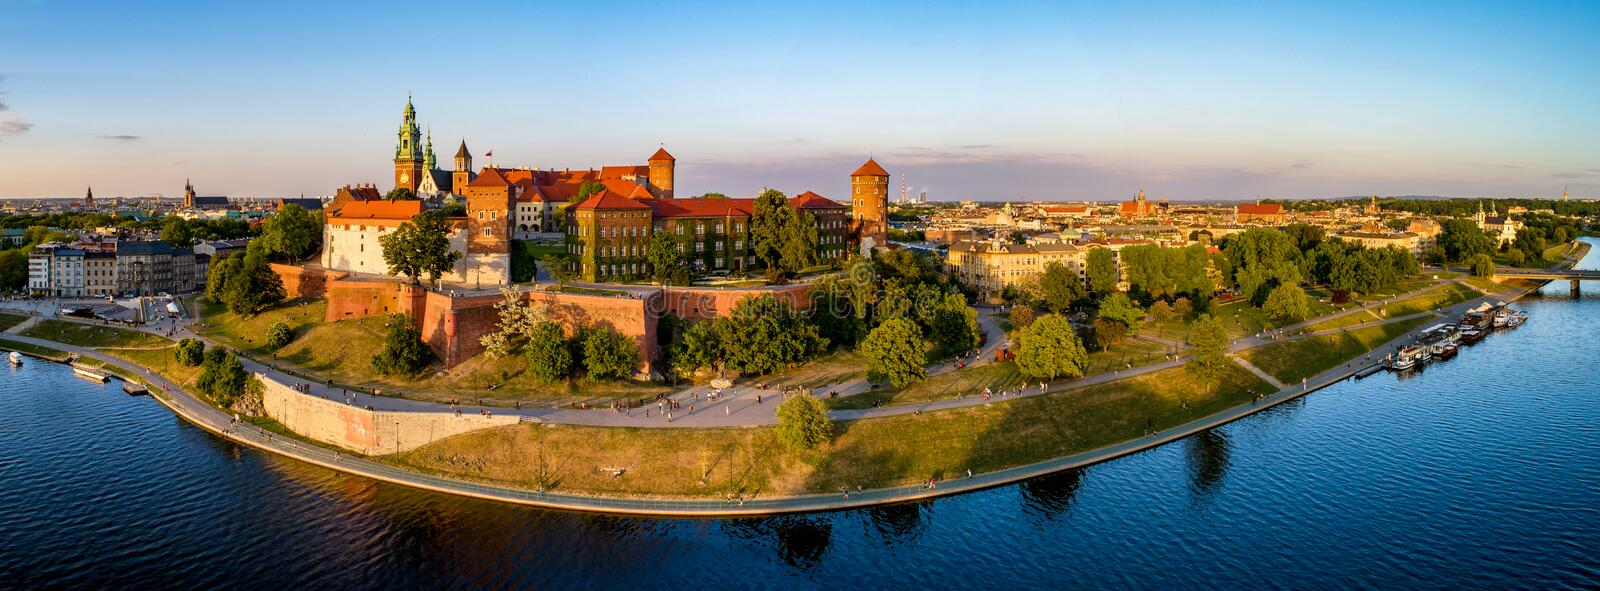 Wide Panorama of Krakow, Poland, Wawel castle and Vistula river. Krakow, Poland. Wide aerial panorama at sunset with Royal Wawel castle and cathedral. Far view stock photos